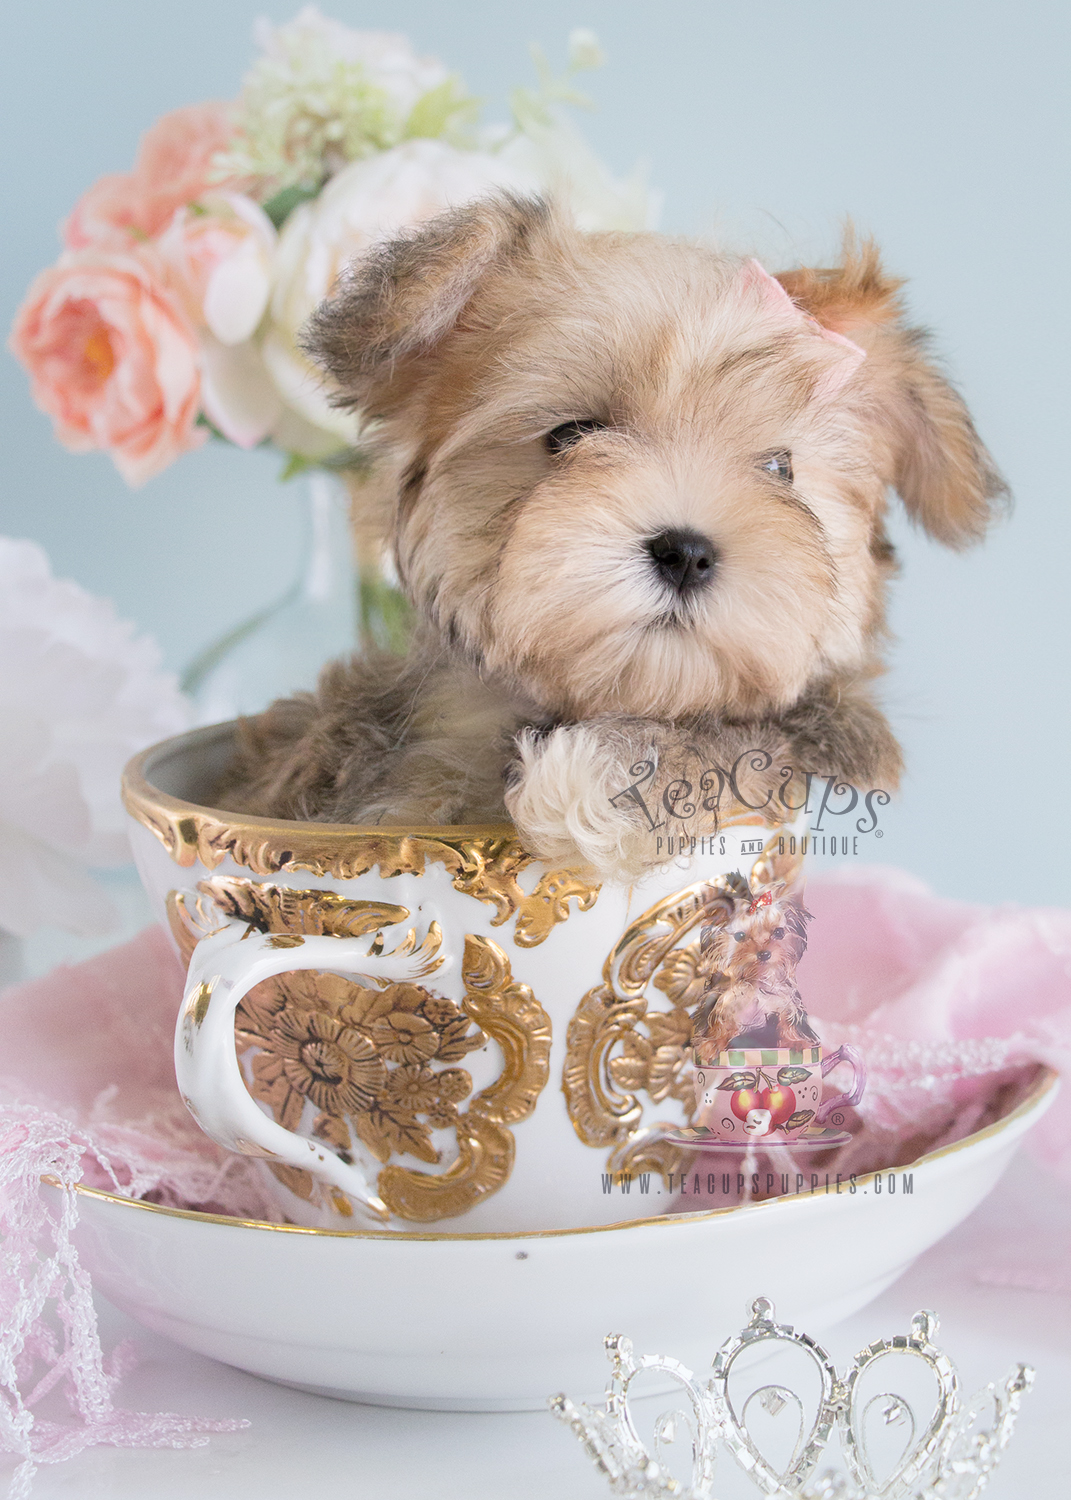 Morkie Puppy #177 for Sale Teacups Puppies